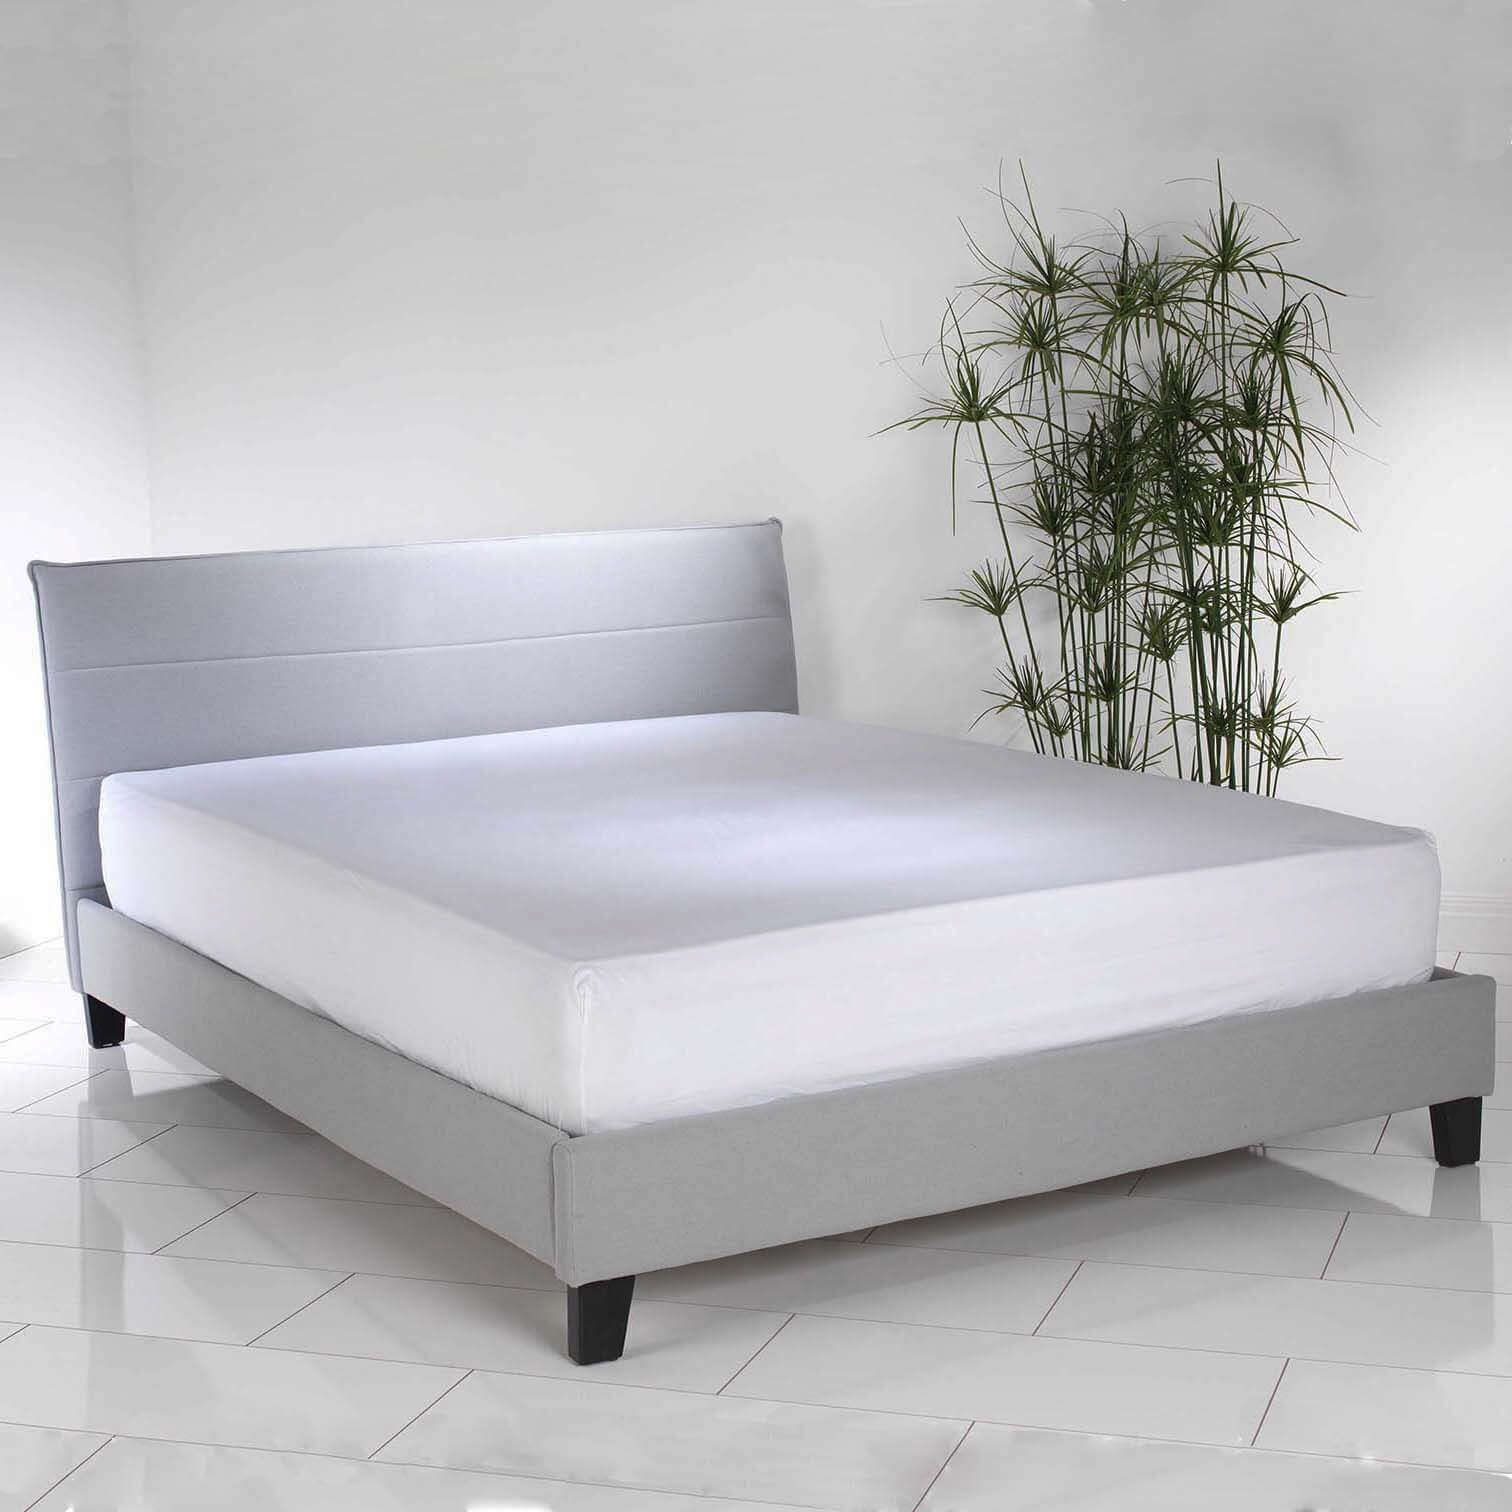 King Size Blue Fabric Linen Upholstered Modern Bed